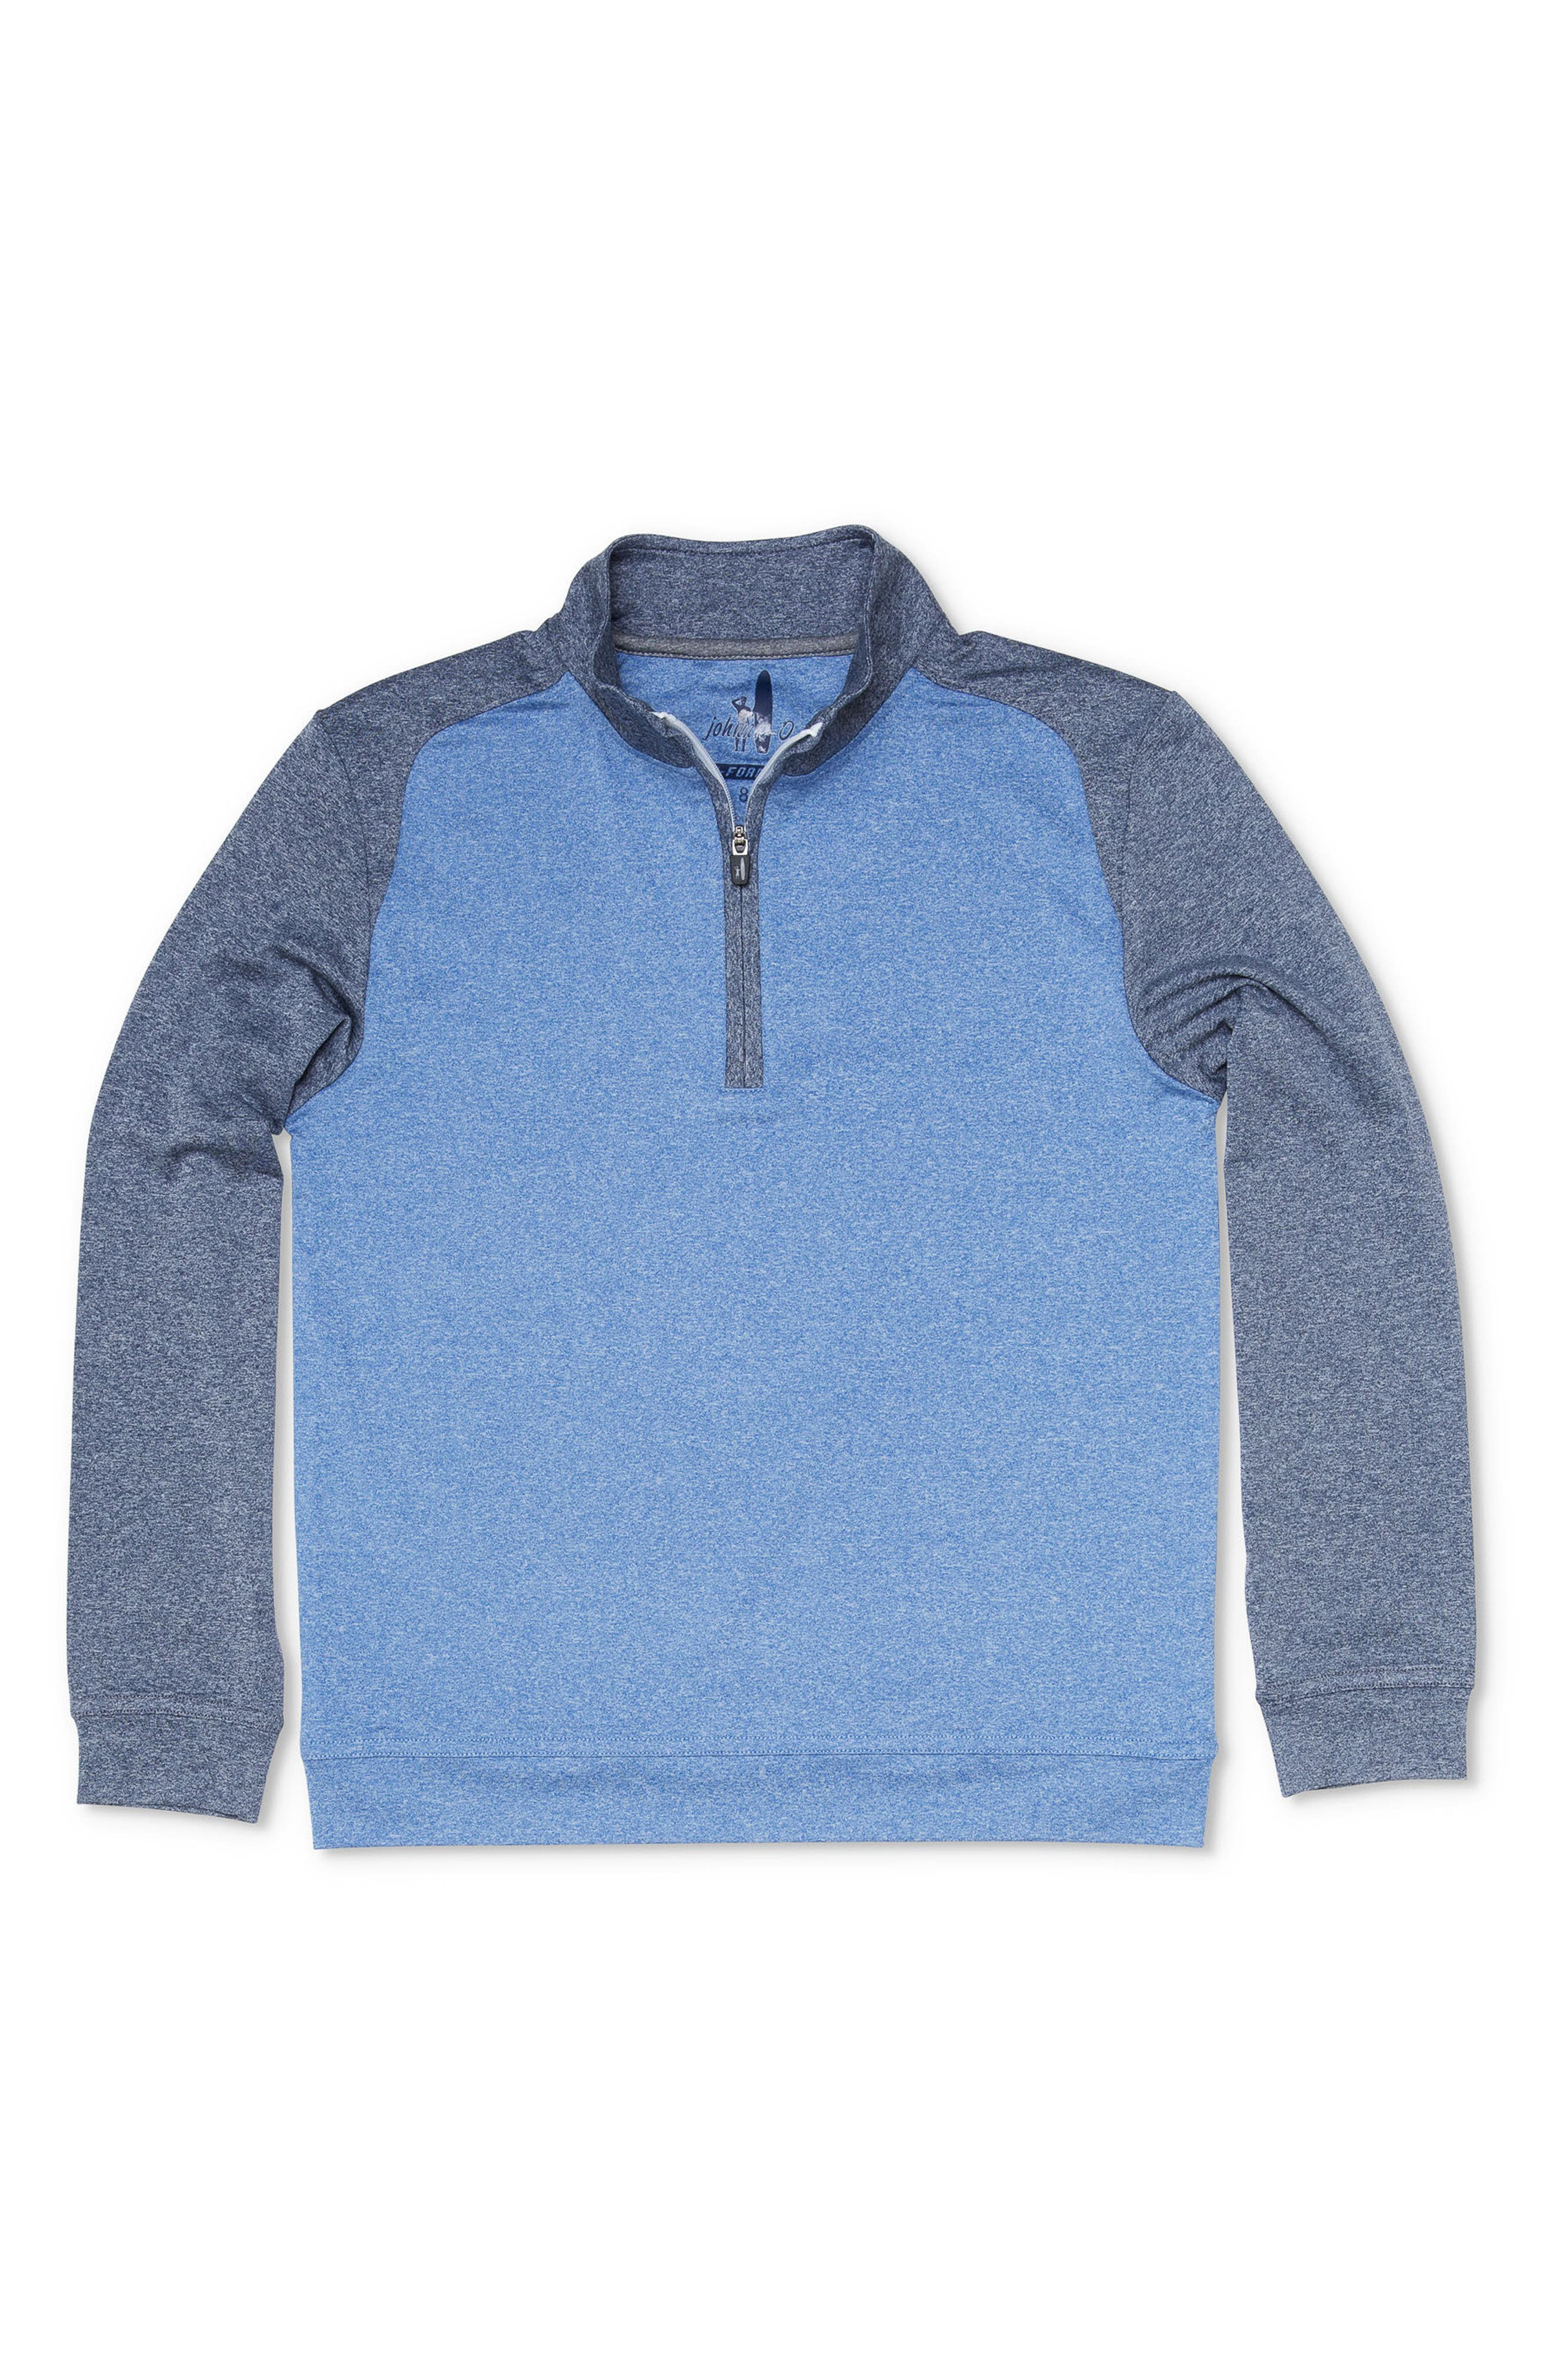 Sway Quarter Zip Pullover,                         Main,                         color, Abyss